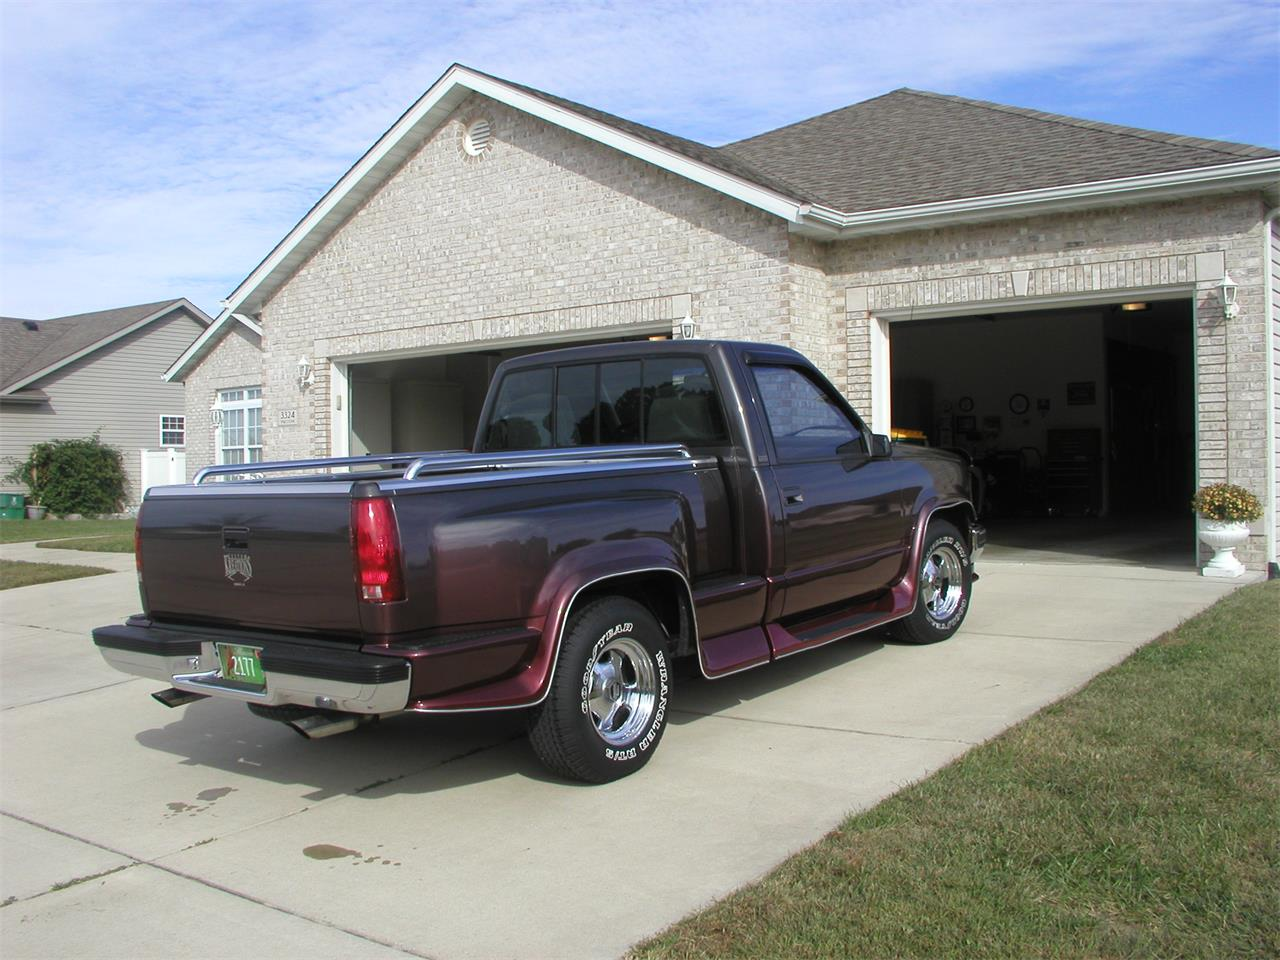 Large Picture of '92 Chevrolet Pickup located in Granite City Illinois - $11,000.00 - KNIK